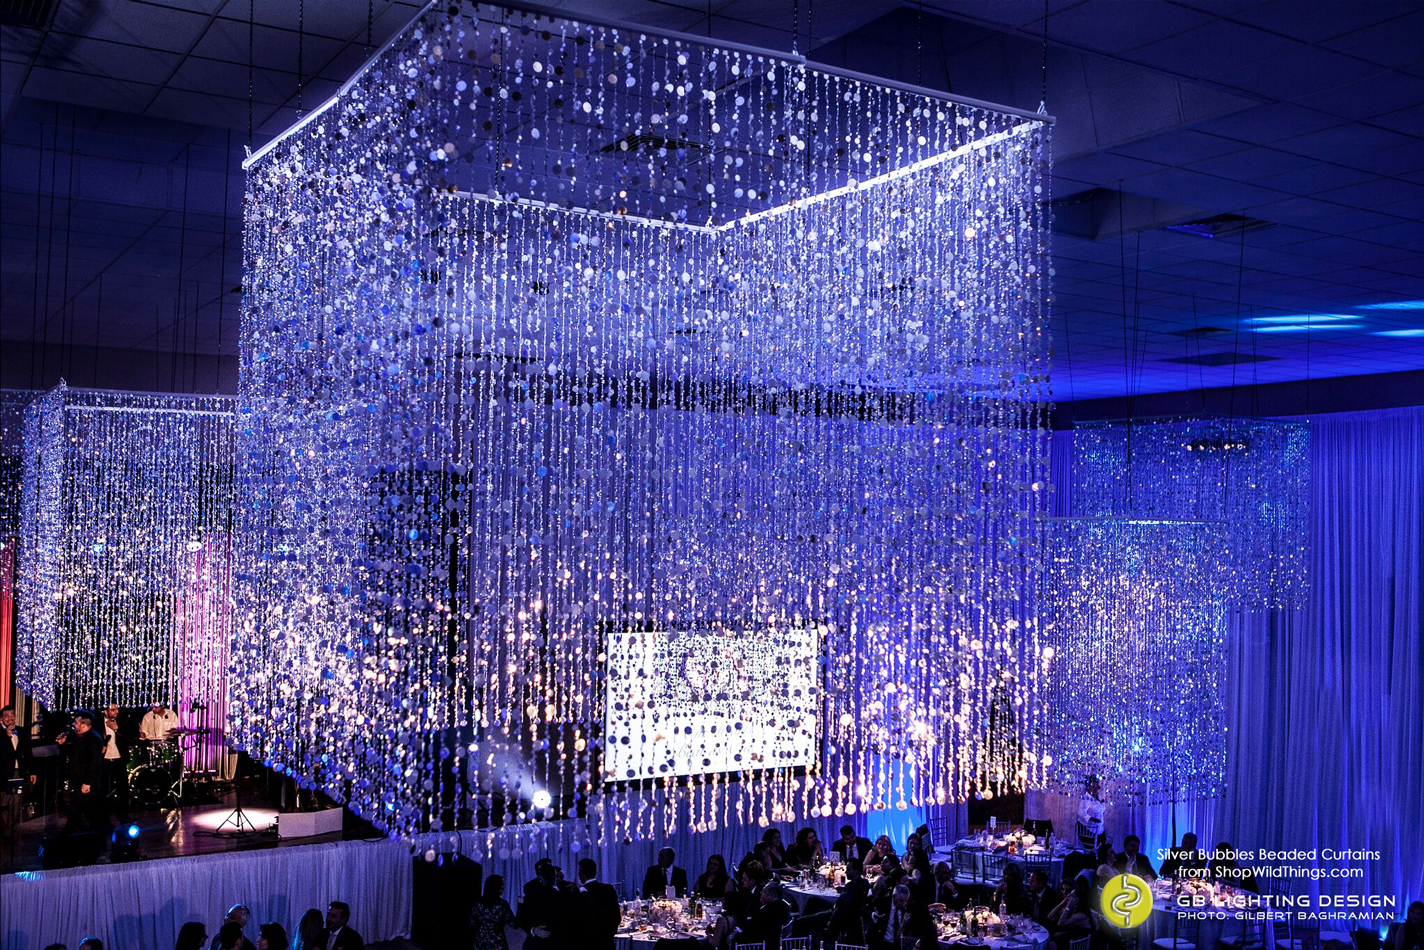 An Amazing Transformation - Bubbles Beaded Curtains